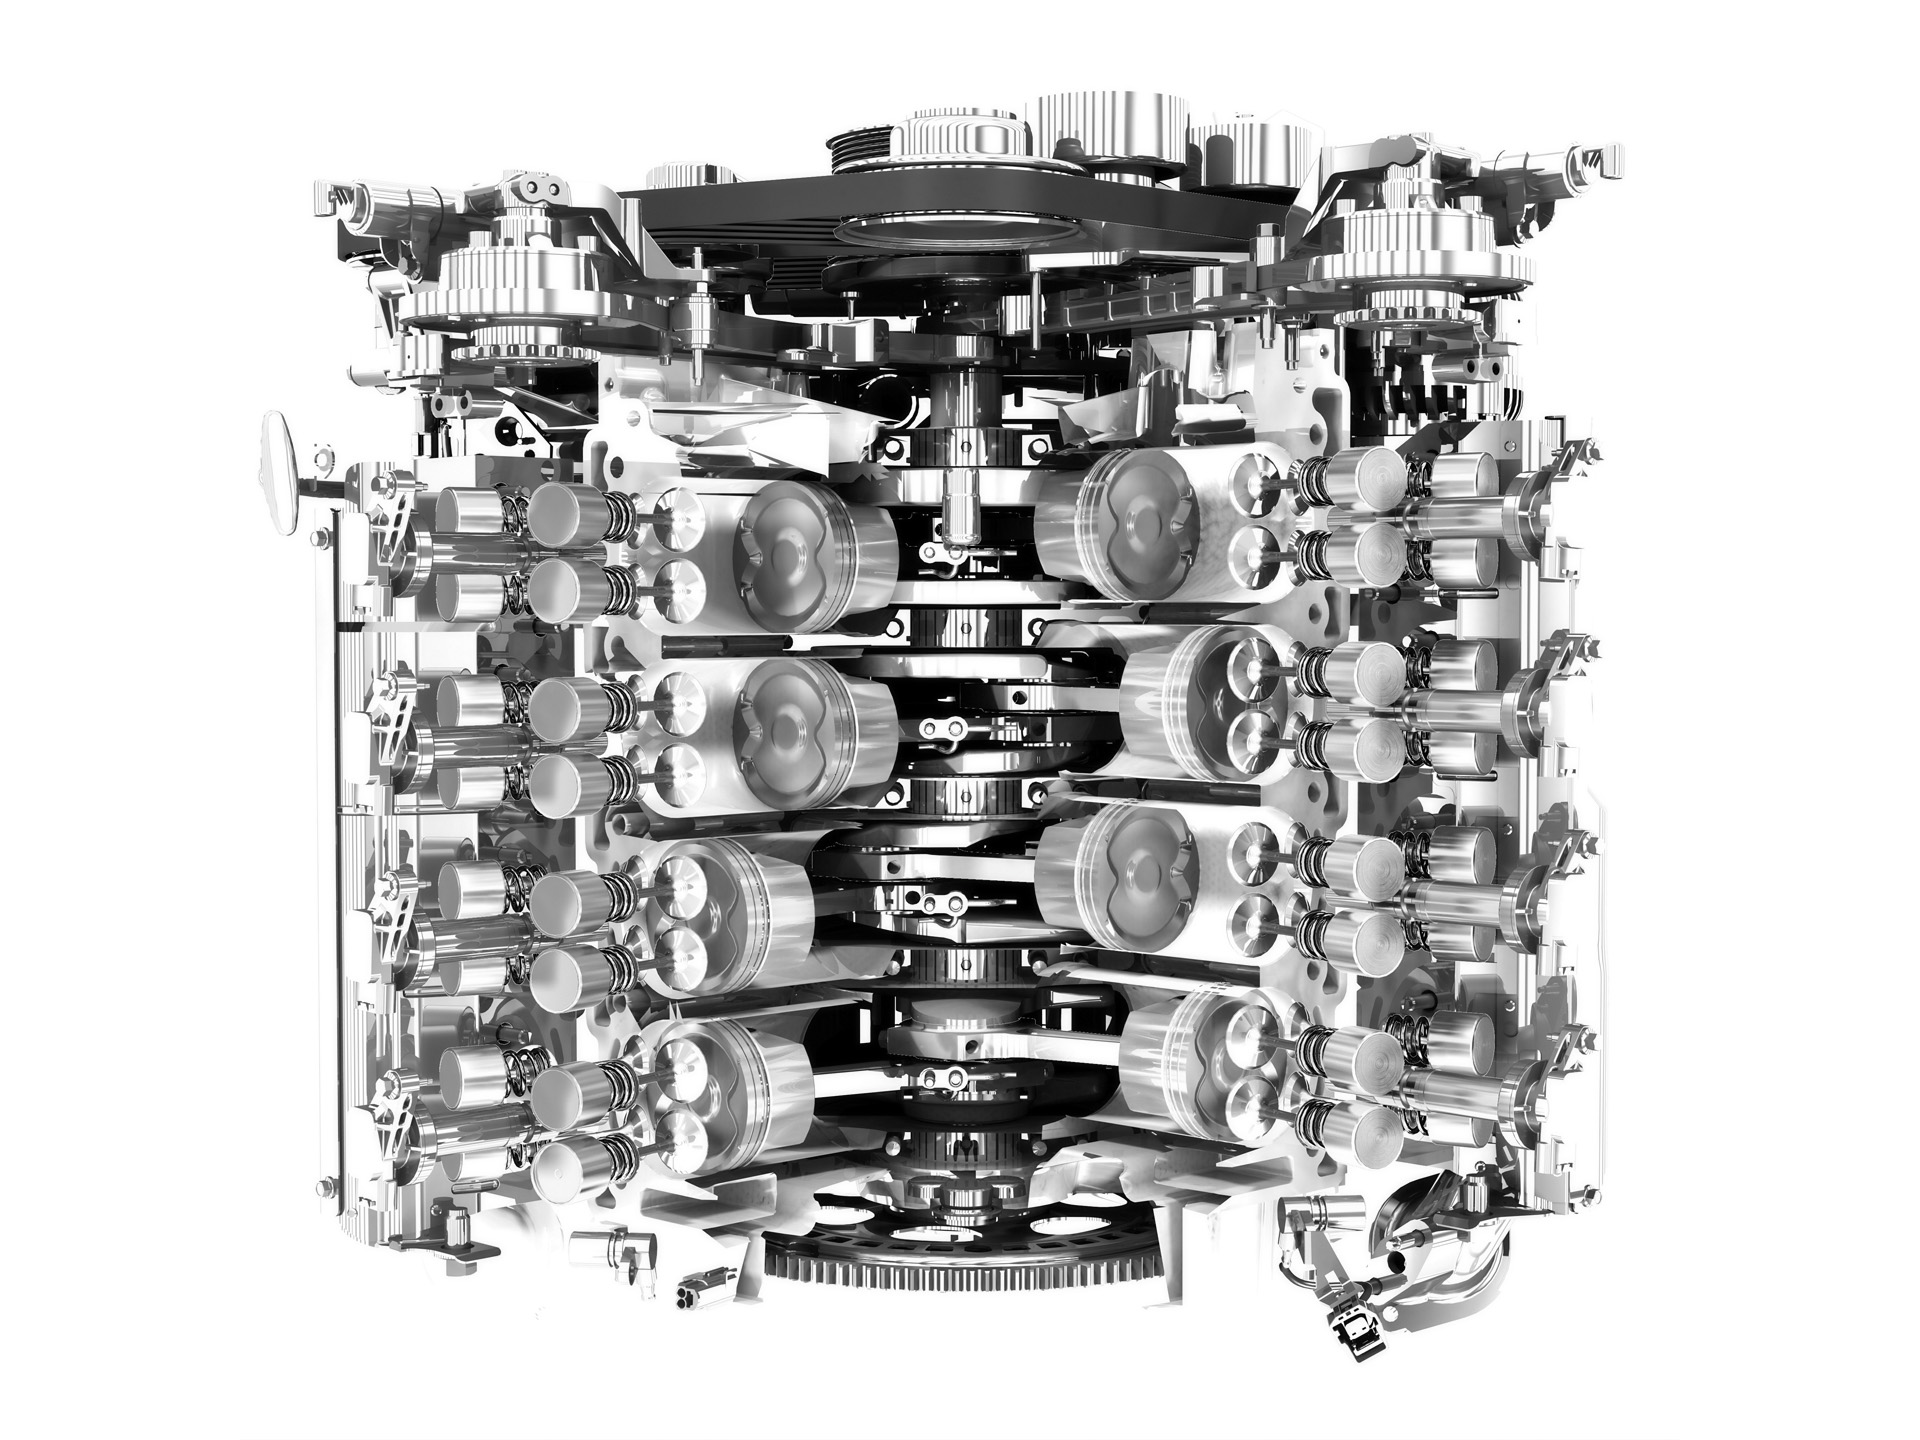 Sample P2470 Engine